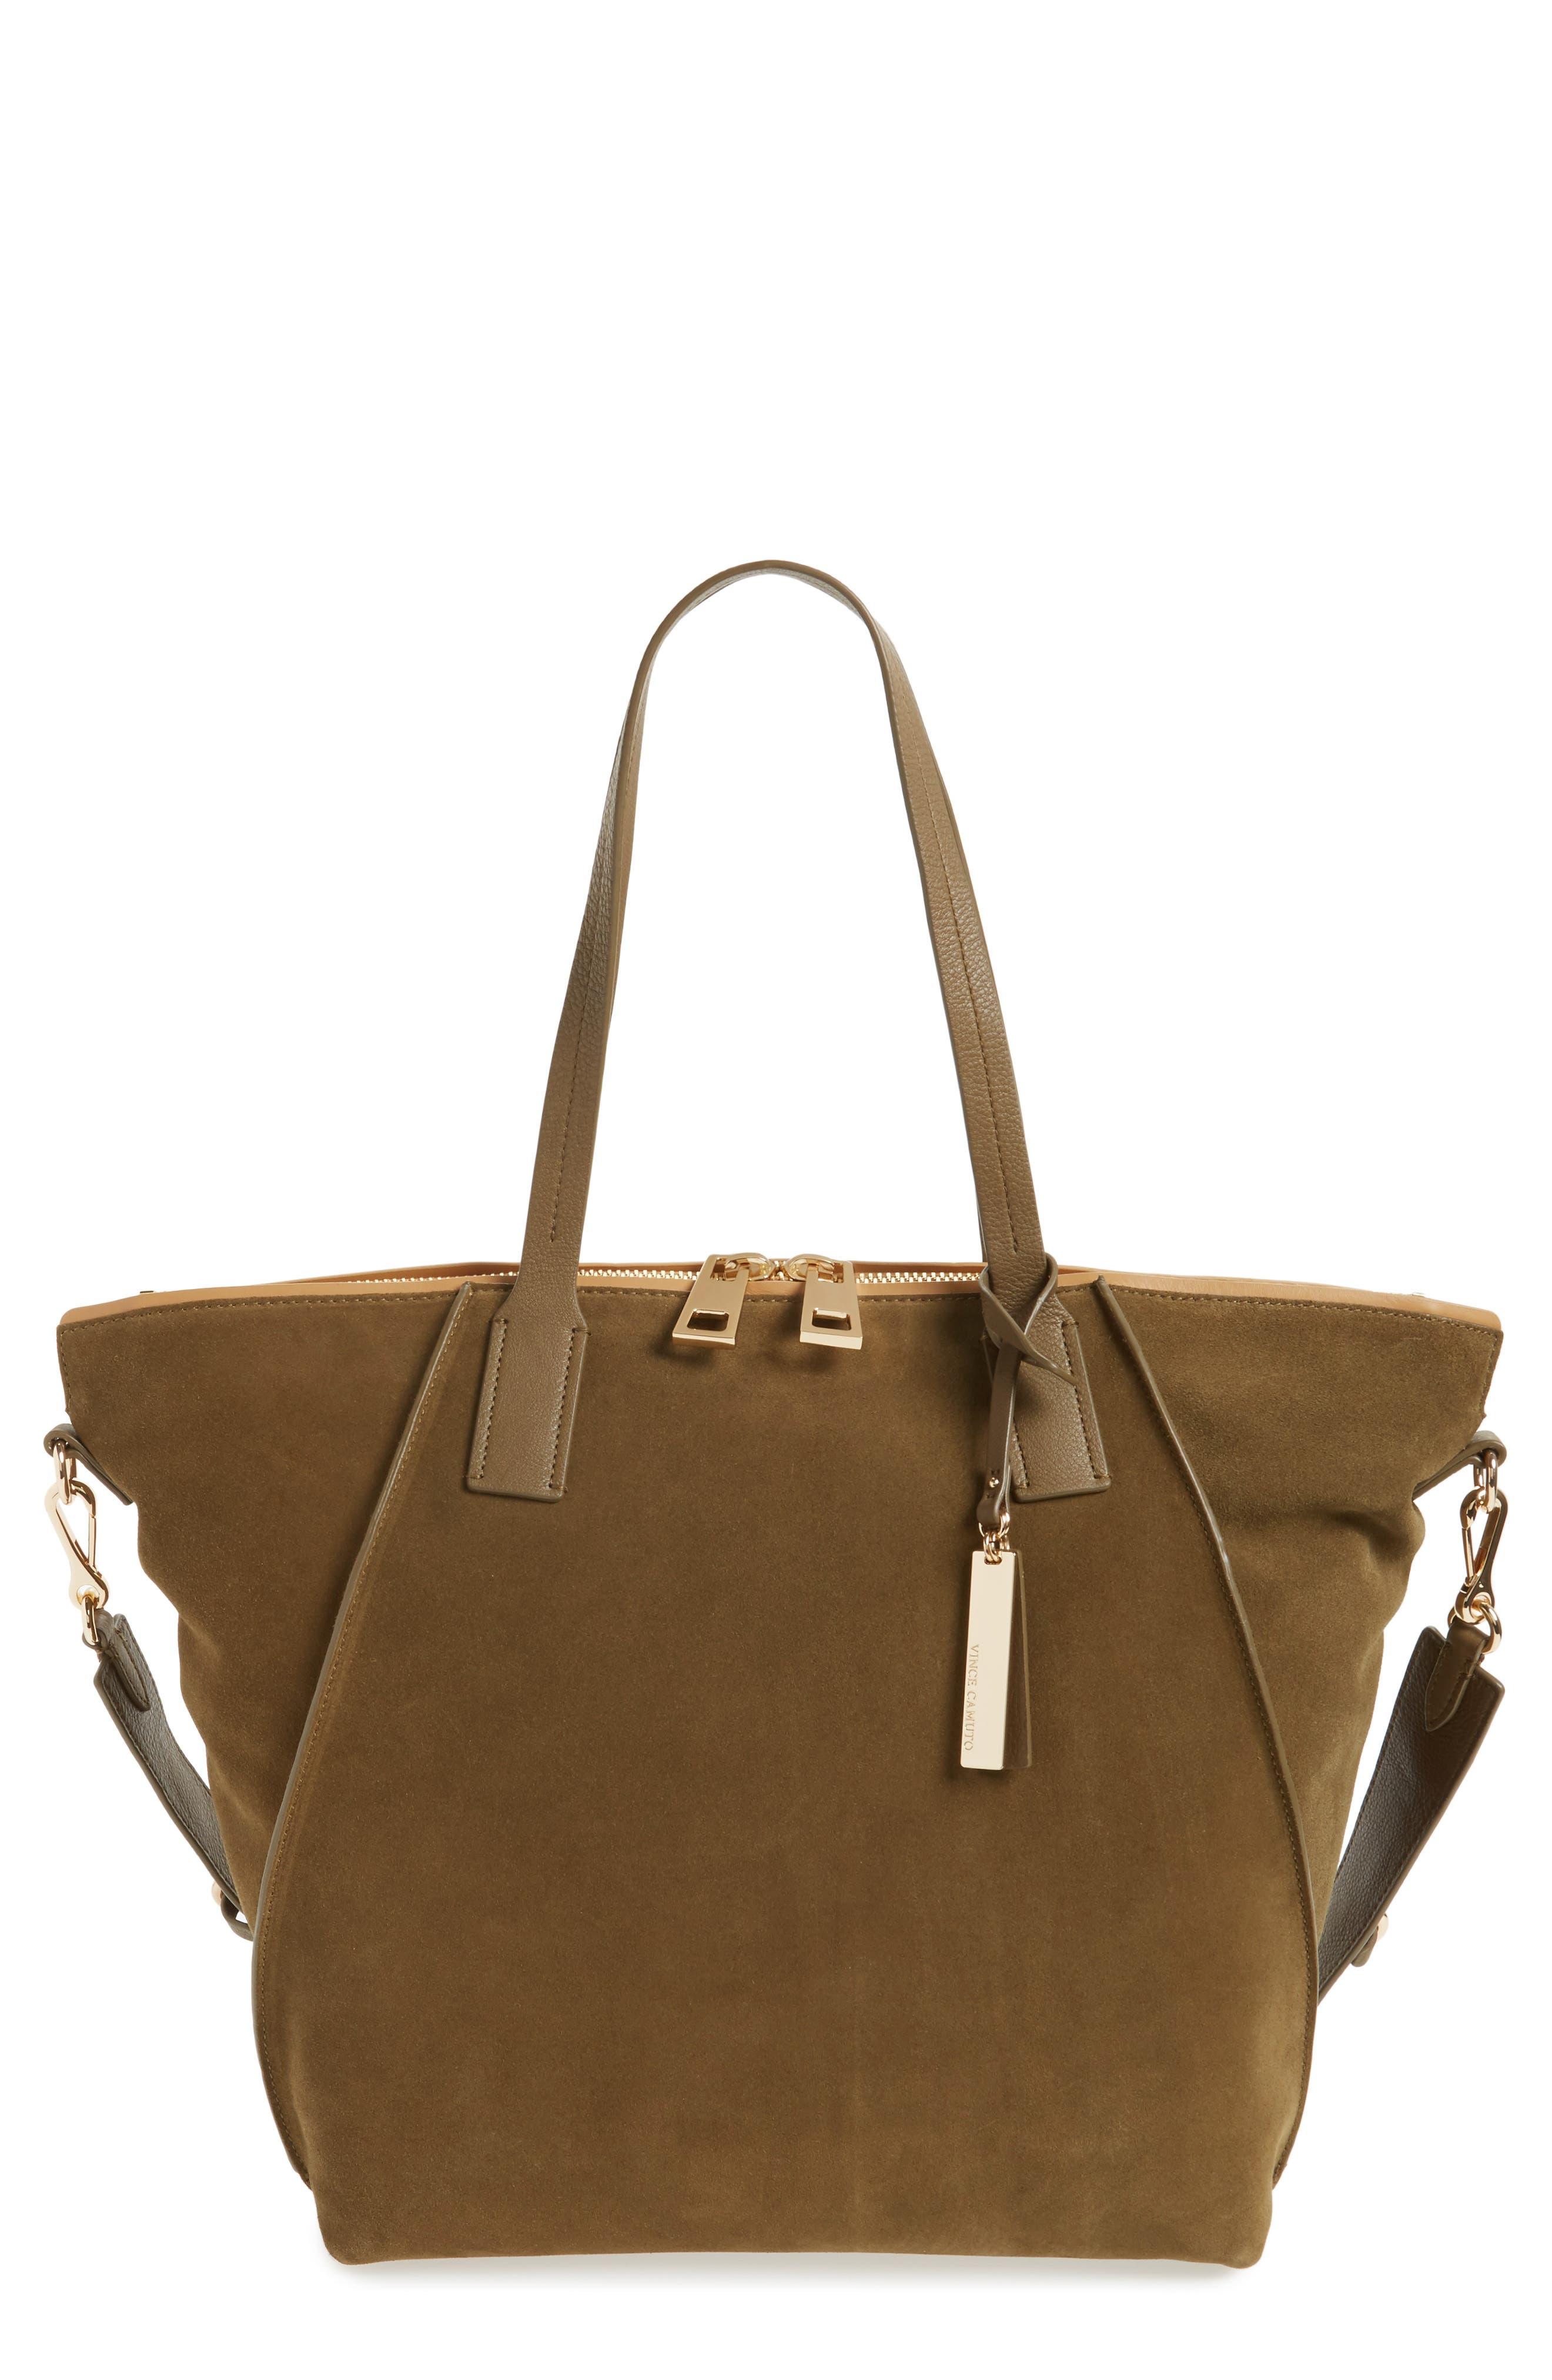 Main Image - Vince Camuto Alicia Suede & Leather Tote